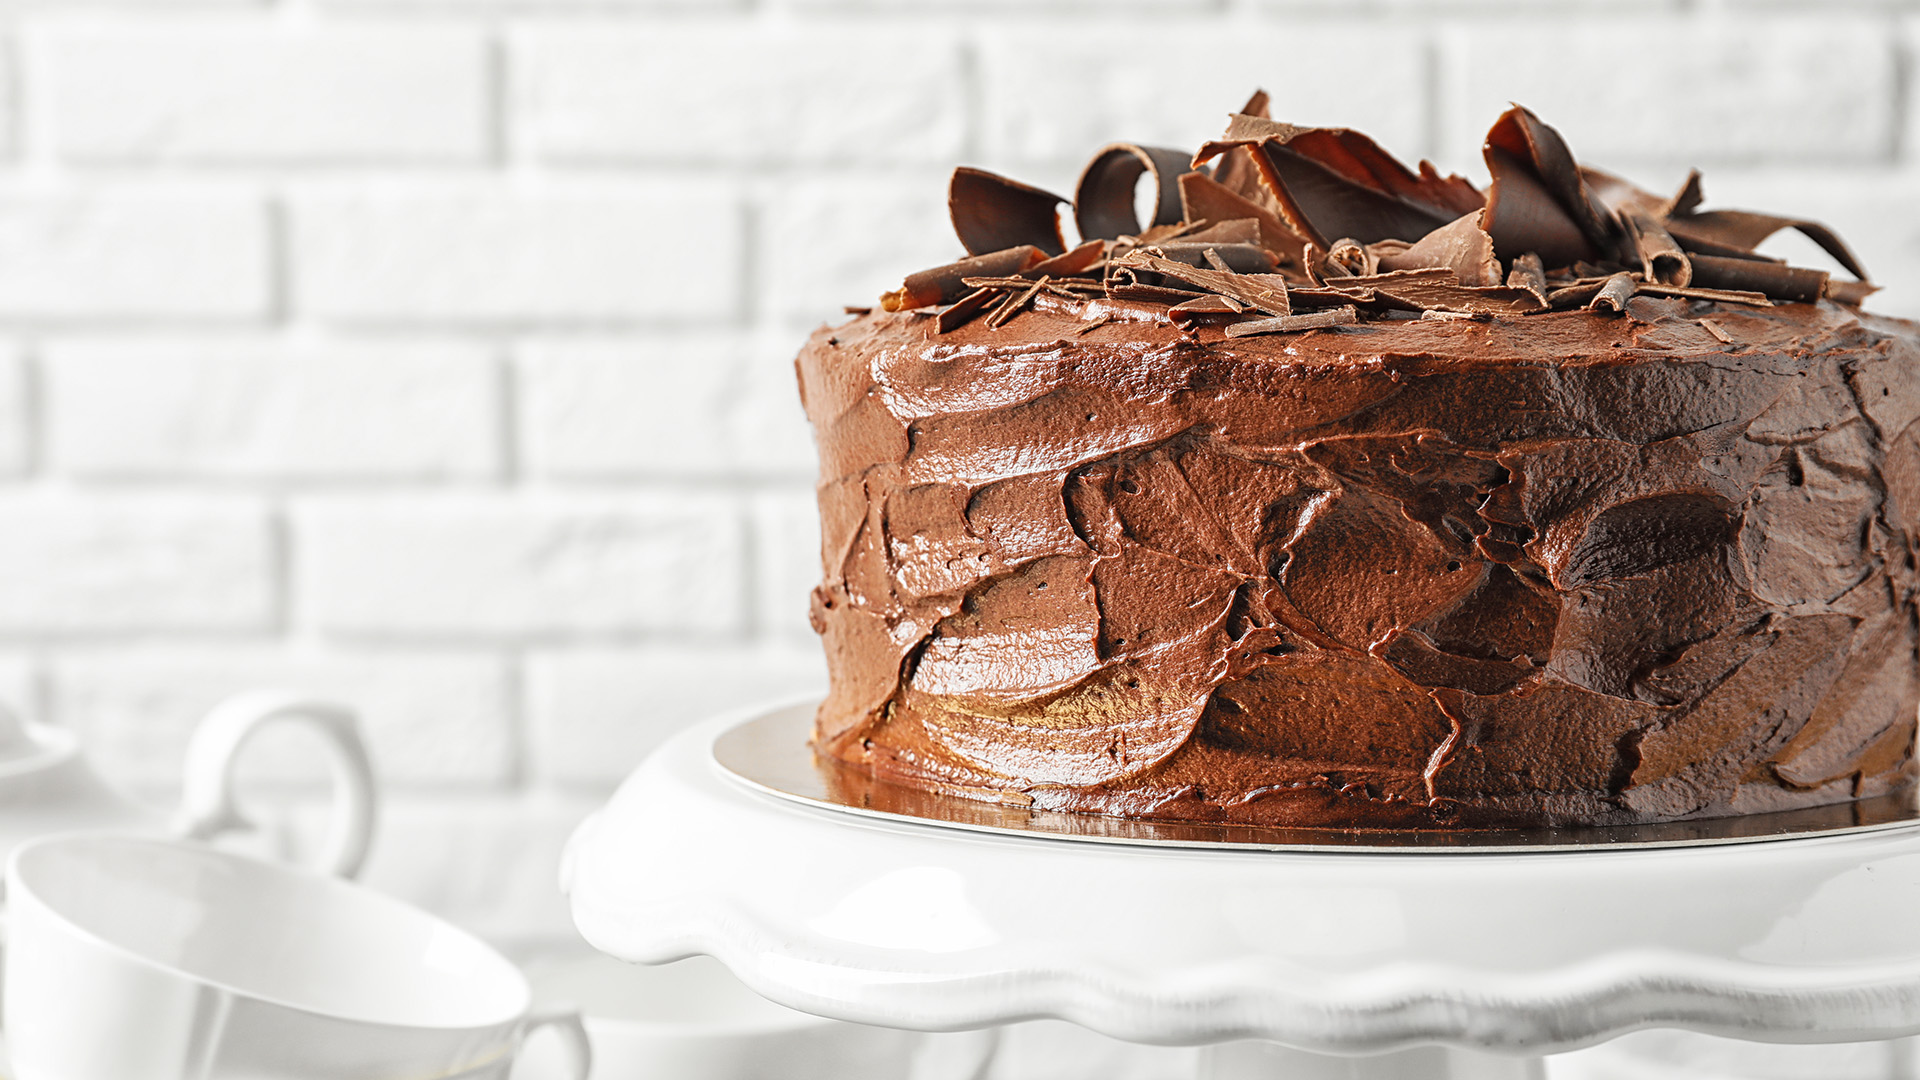 These Ina Garten Chocolate Recipes Are Swoon-Worthy